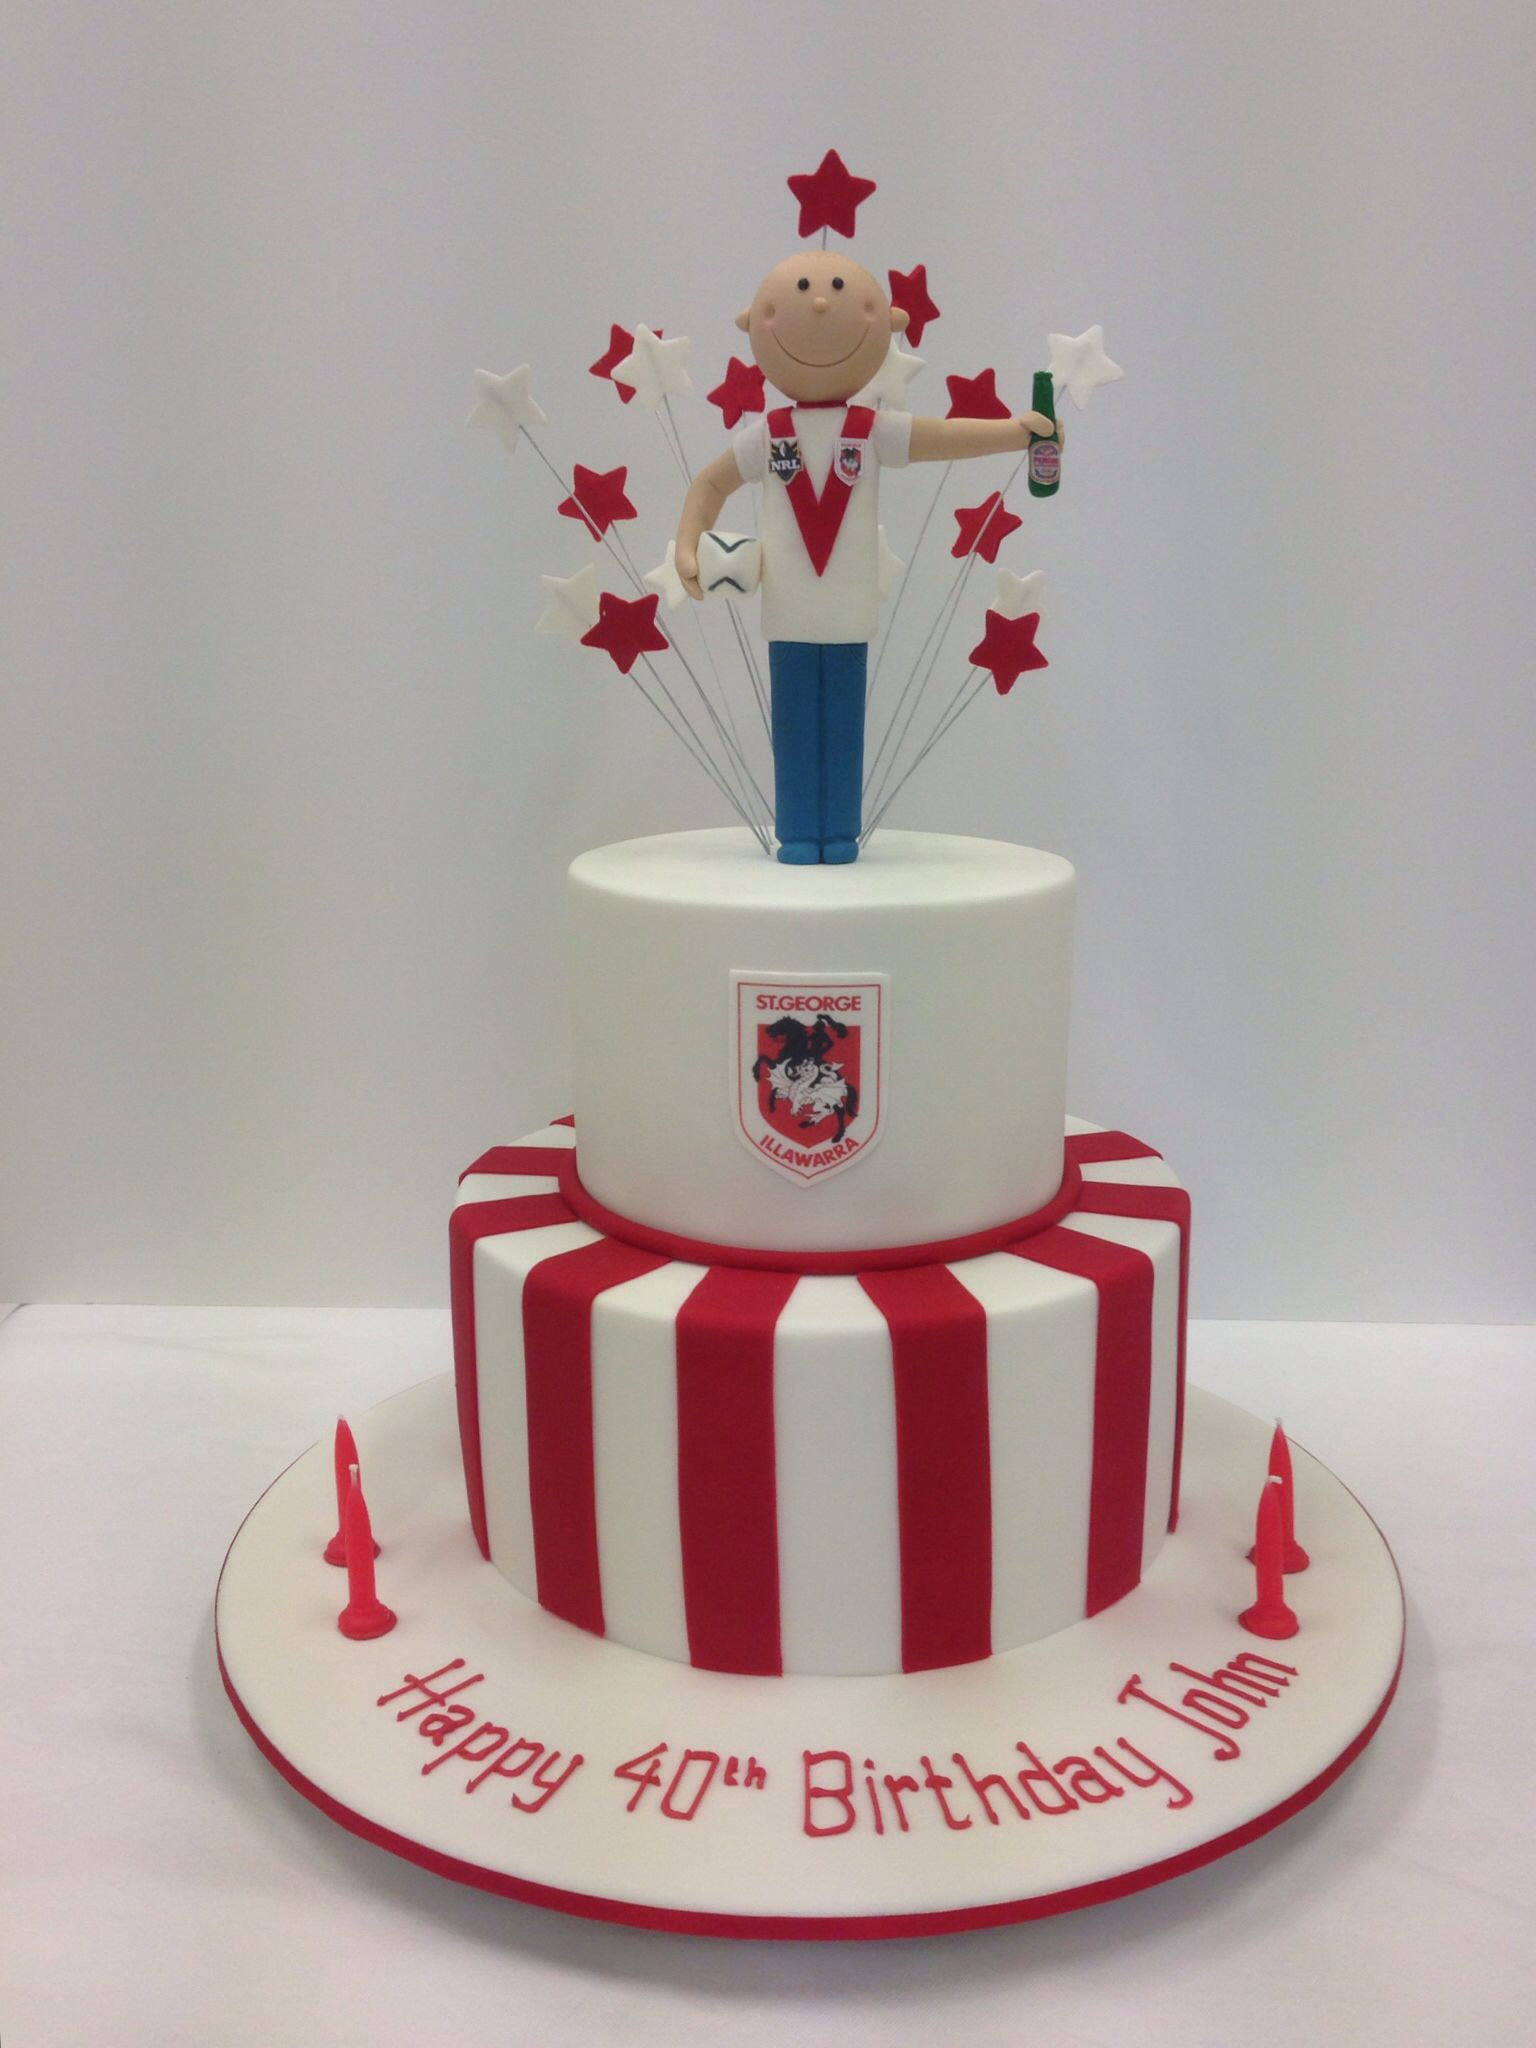 Simple elegant red and white cake with figurines by handis cakes